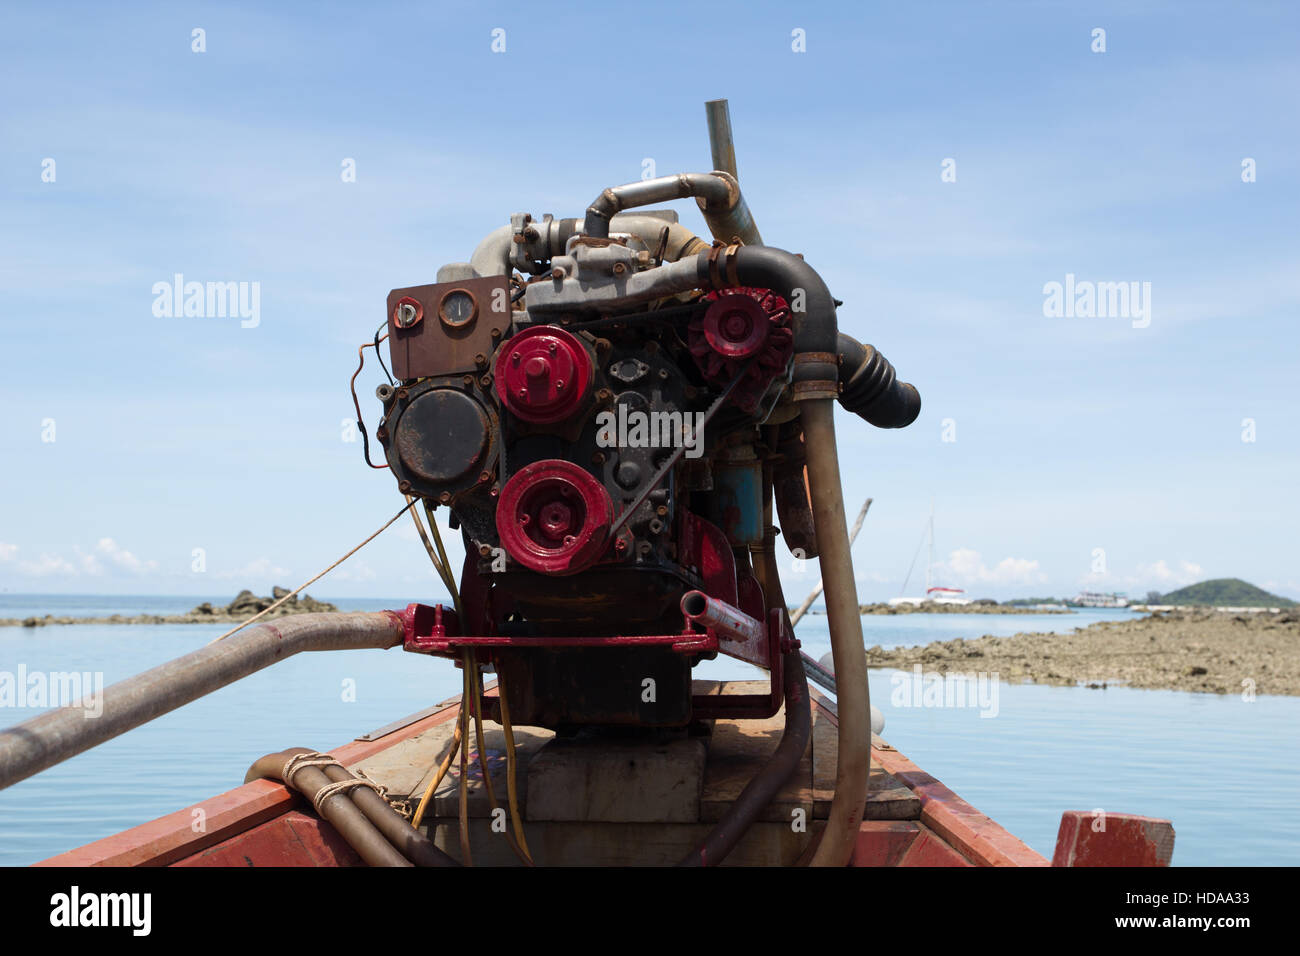 Motor of a longboat - Stock Image